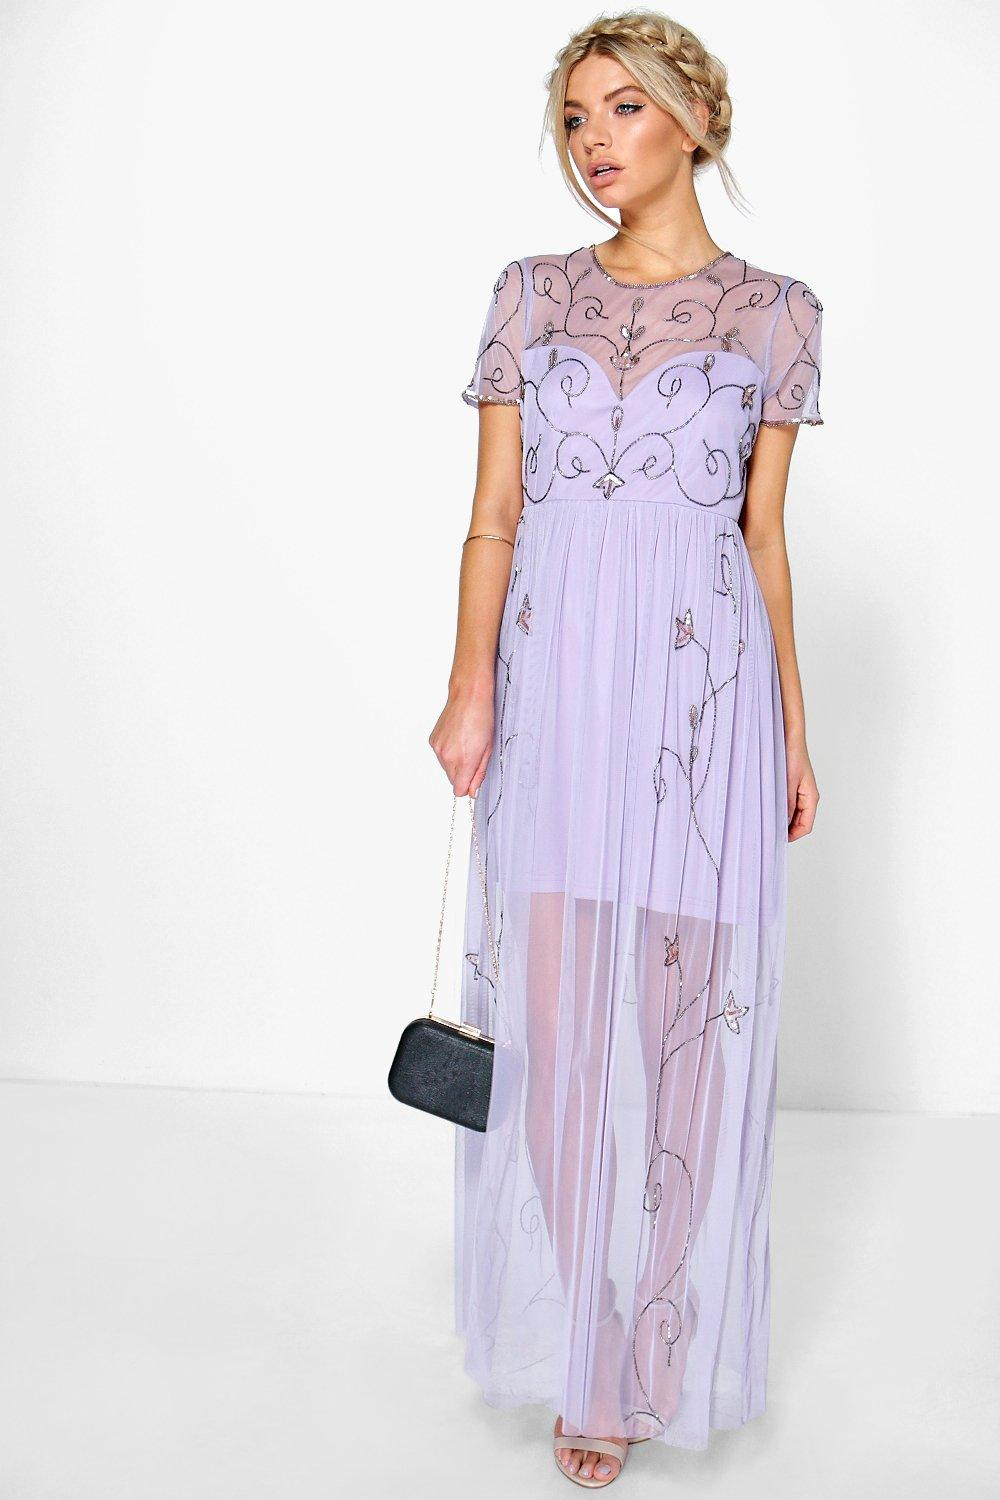 corine boutique embellished maxi dress. hover to zoom TAEWRGG